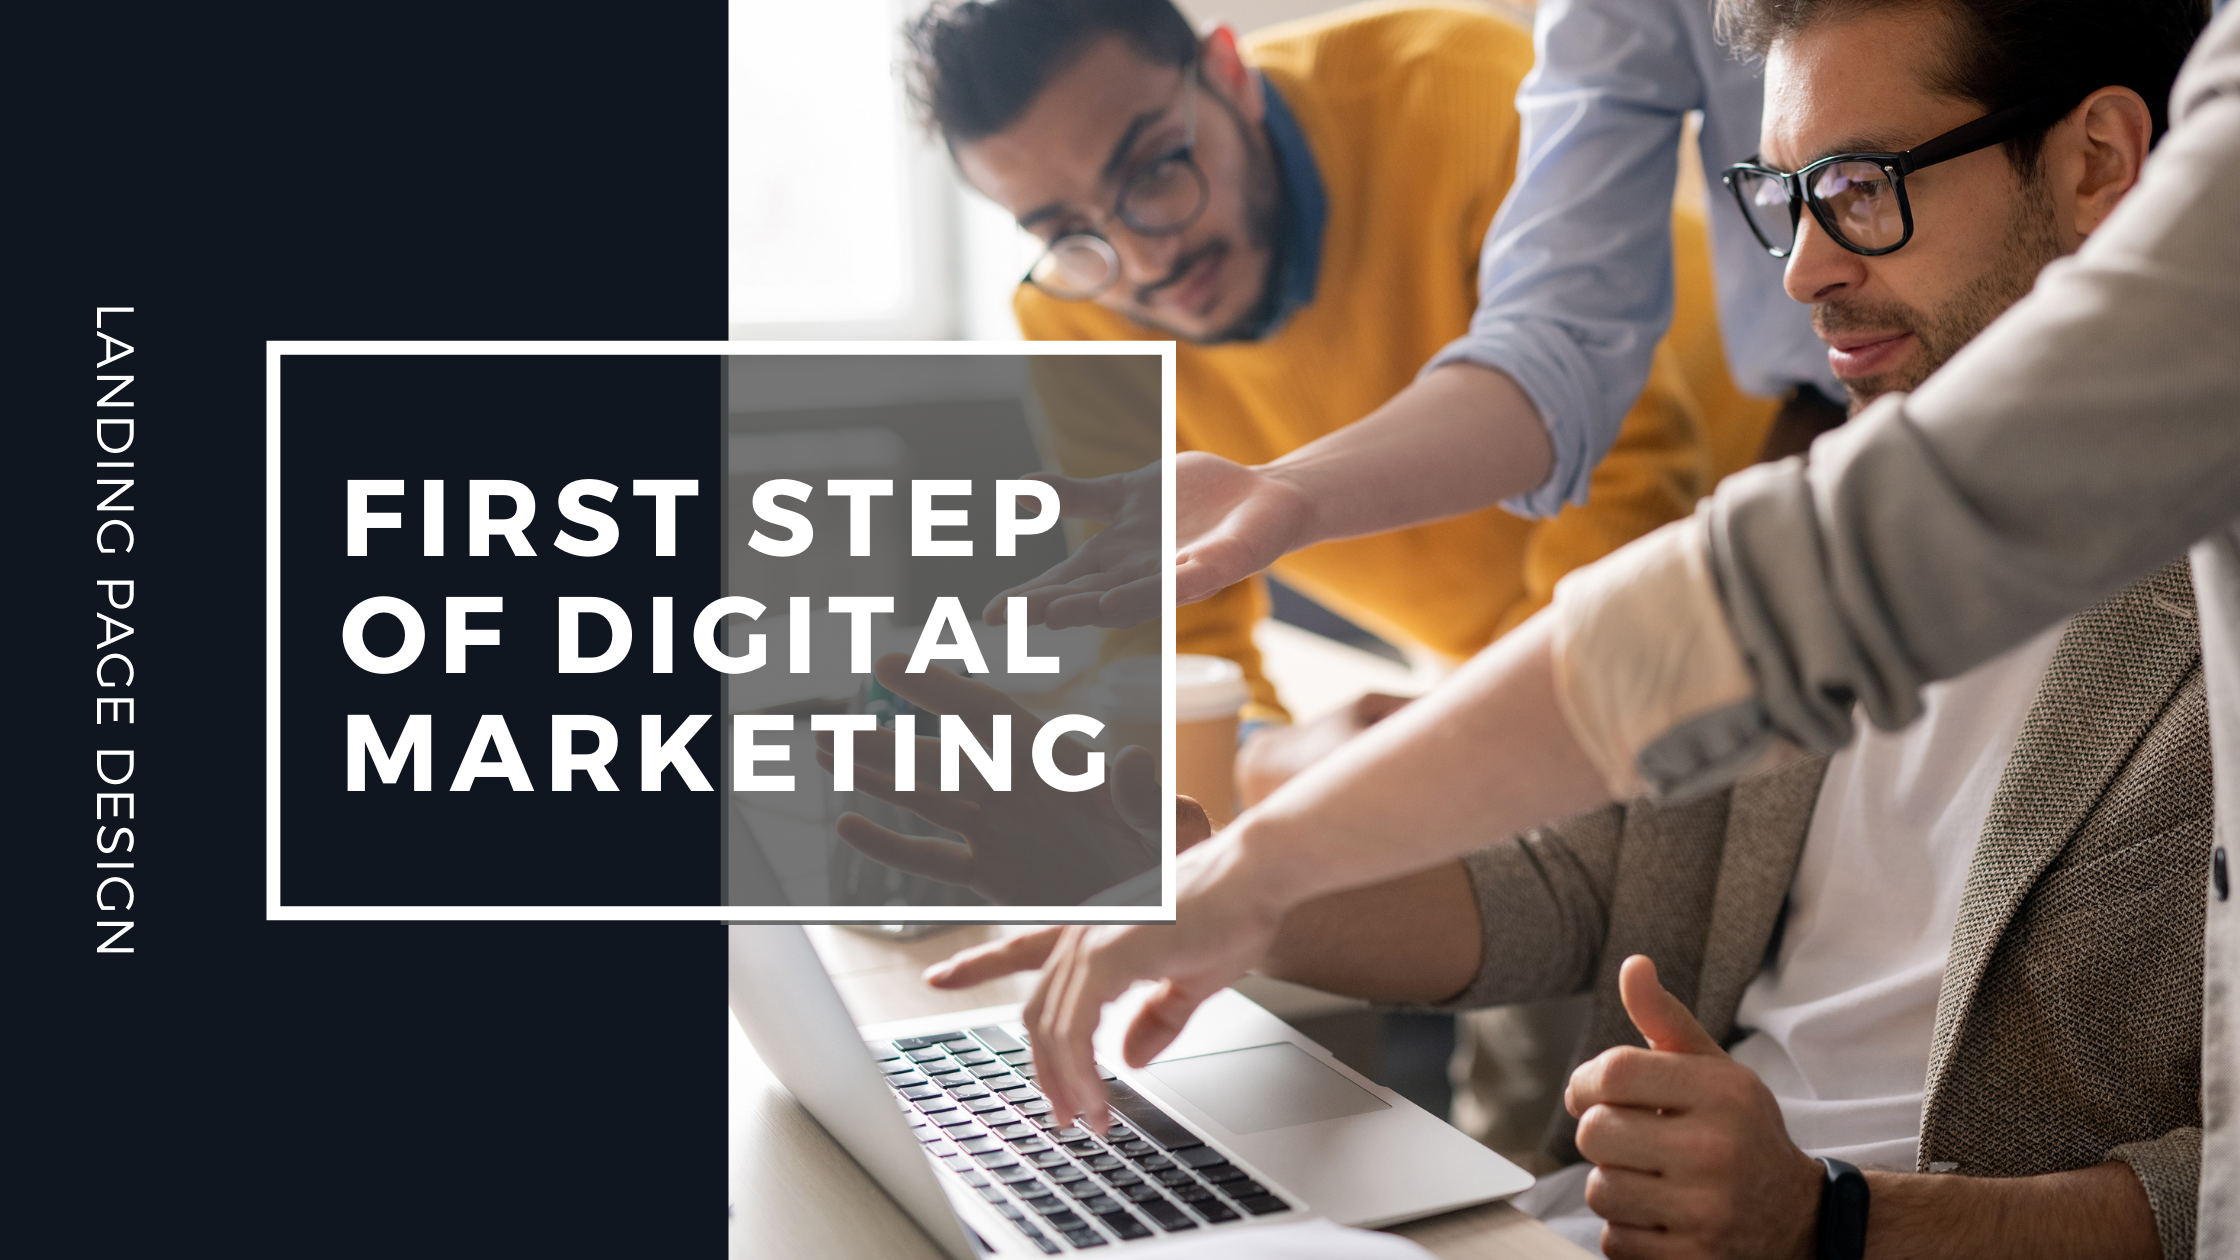 Landing Page Design is almost essential for Digital Marketing